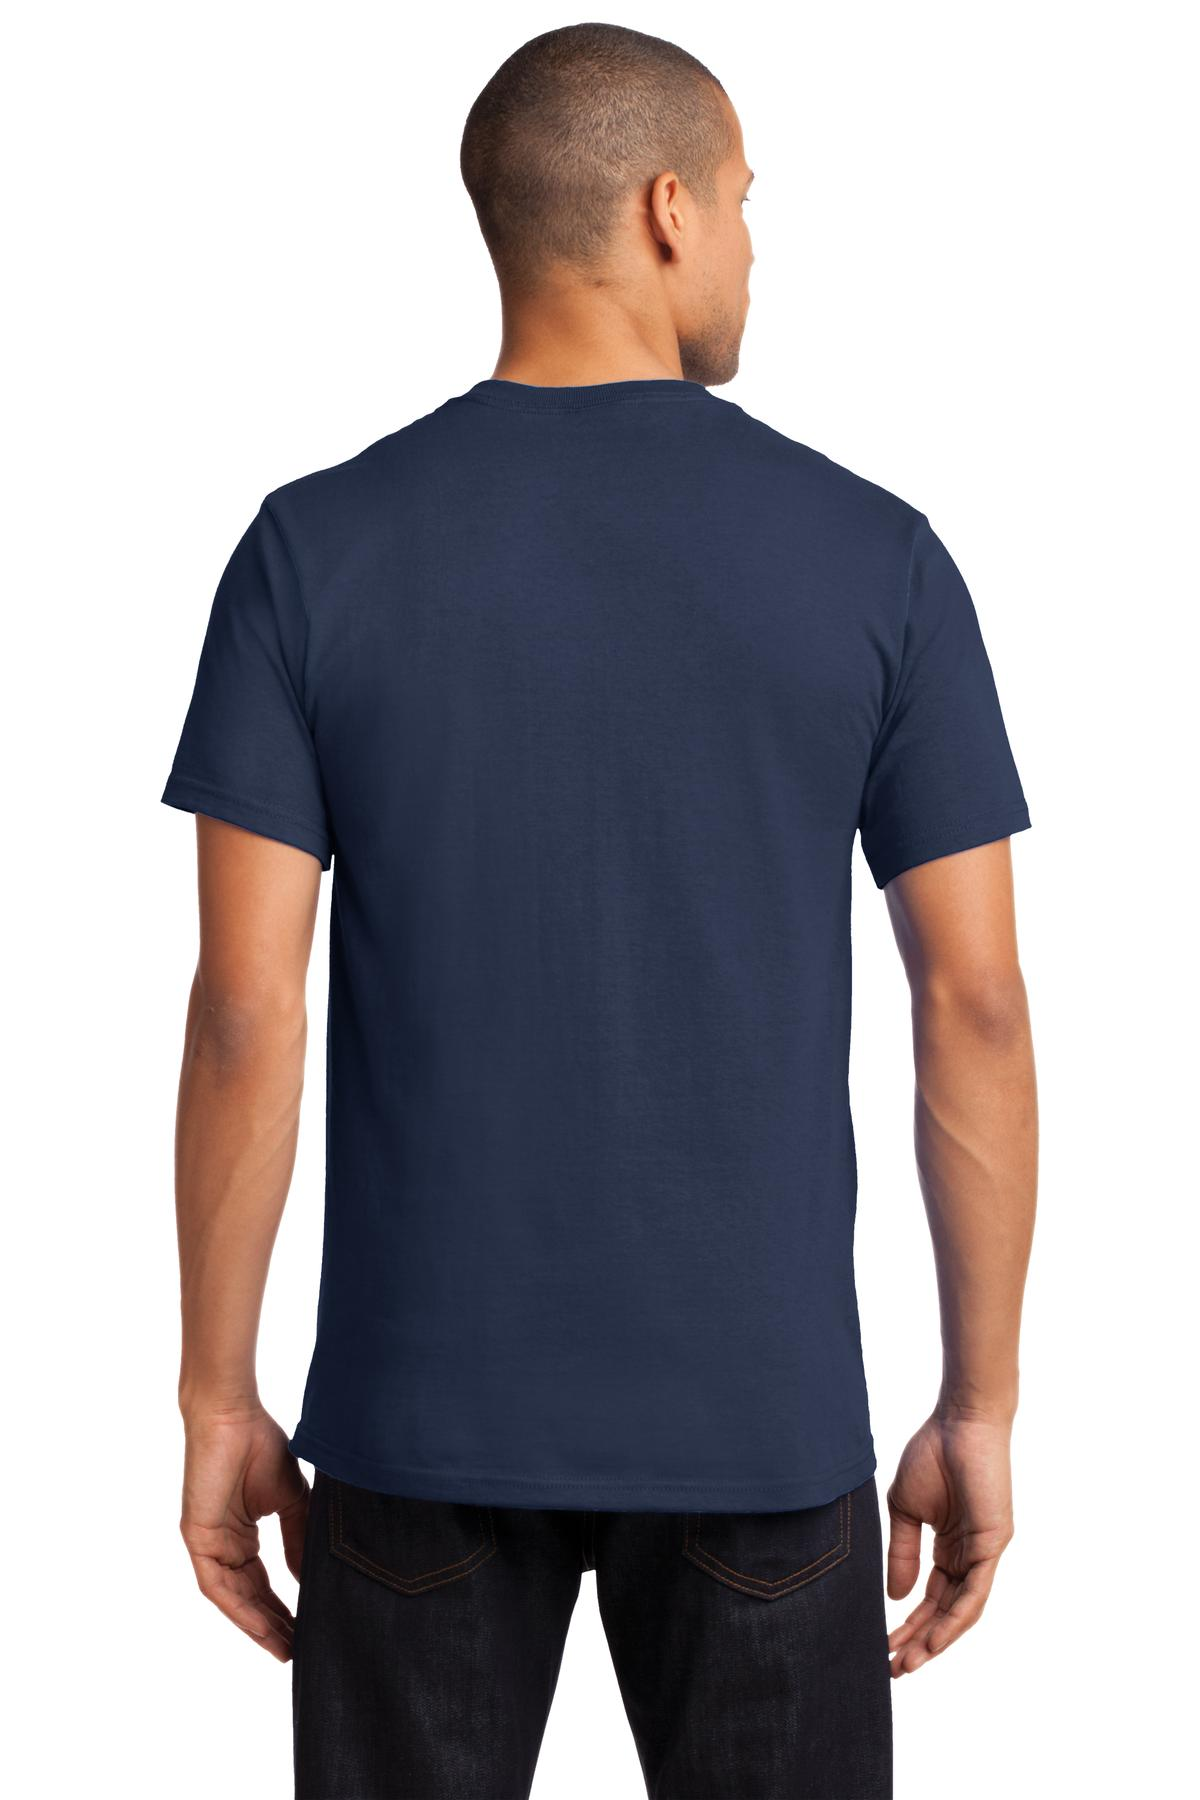 Port-amp-Company-Tall-Essential-TShirt-with-Pocket-PC61PT-Size-LT-4XLT thumbnail 26